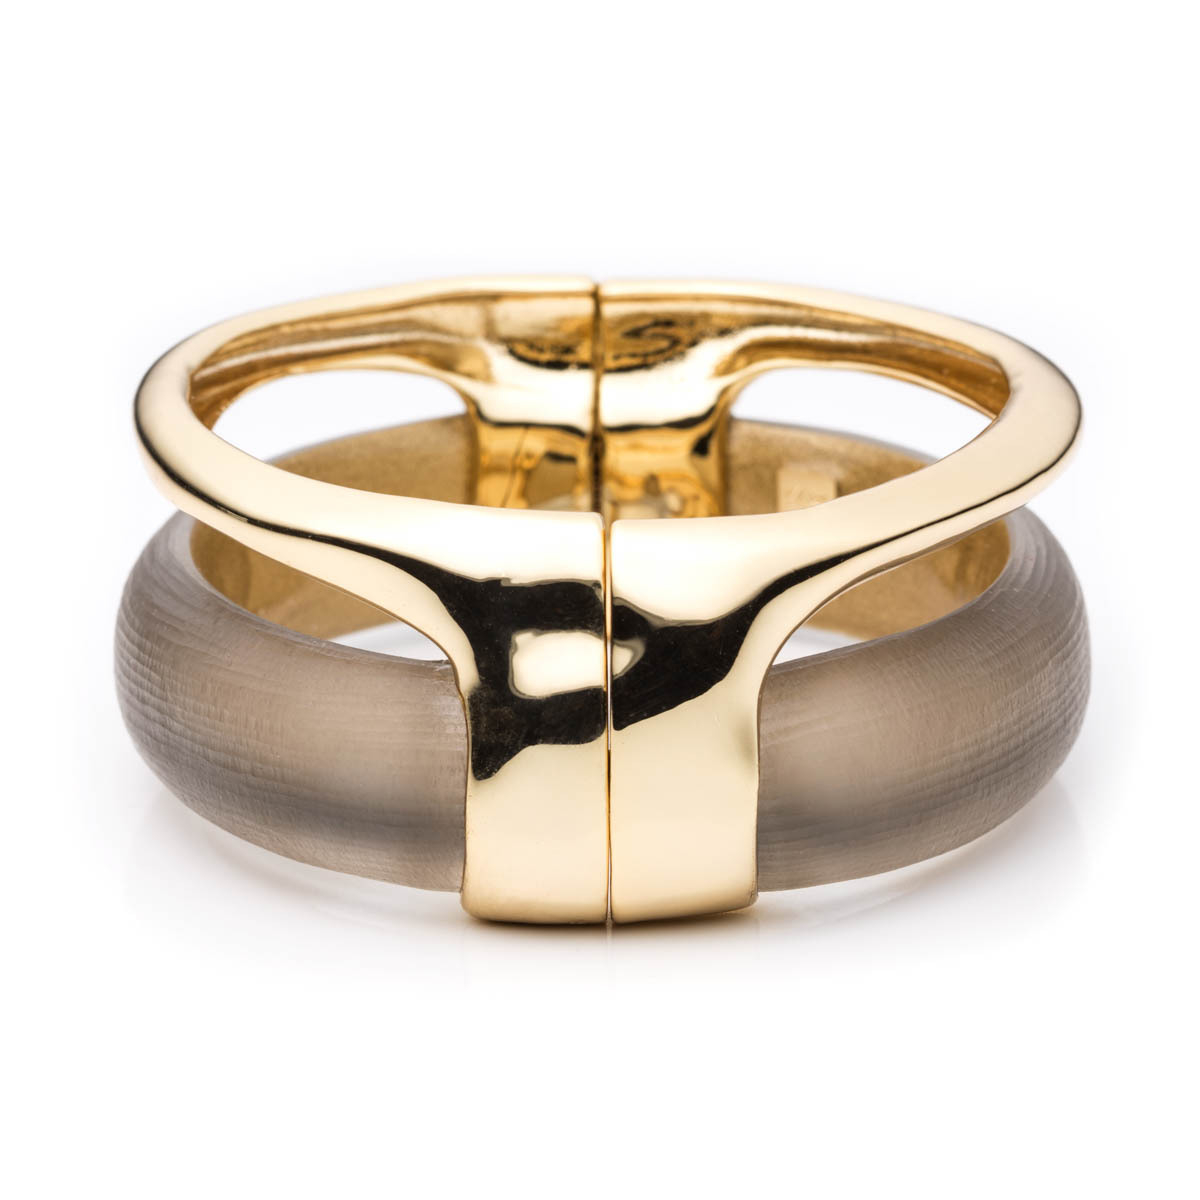 Alexis bittar Gold Stacked Hinged Bracelet You Might Also ...